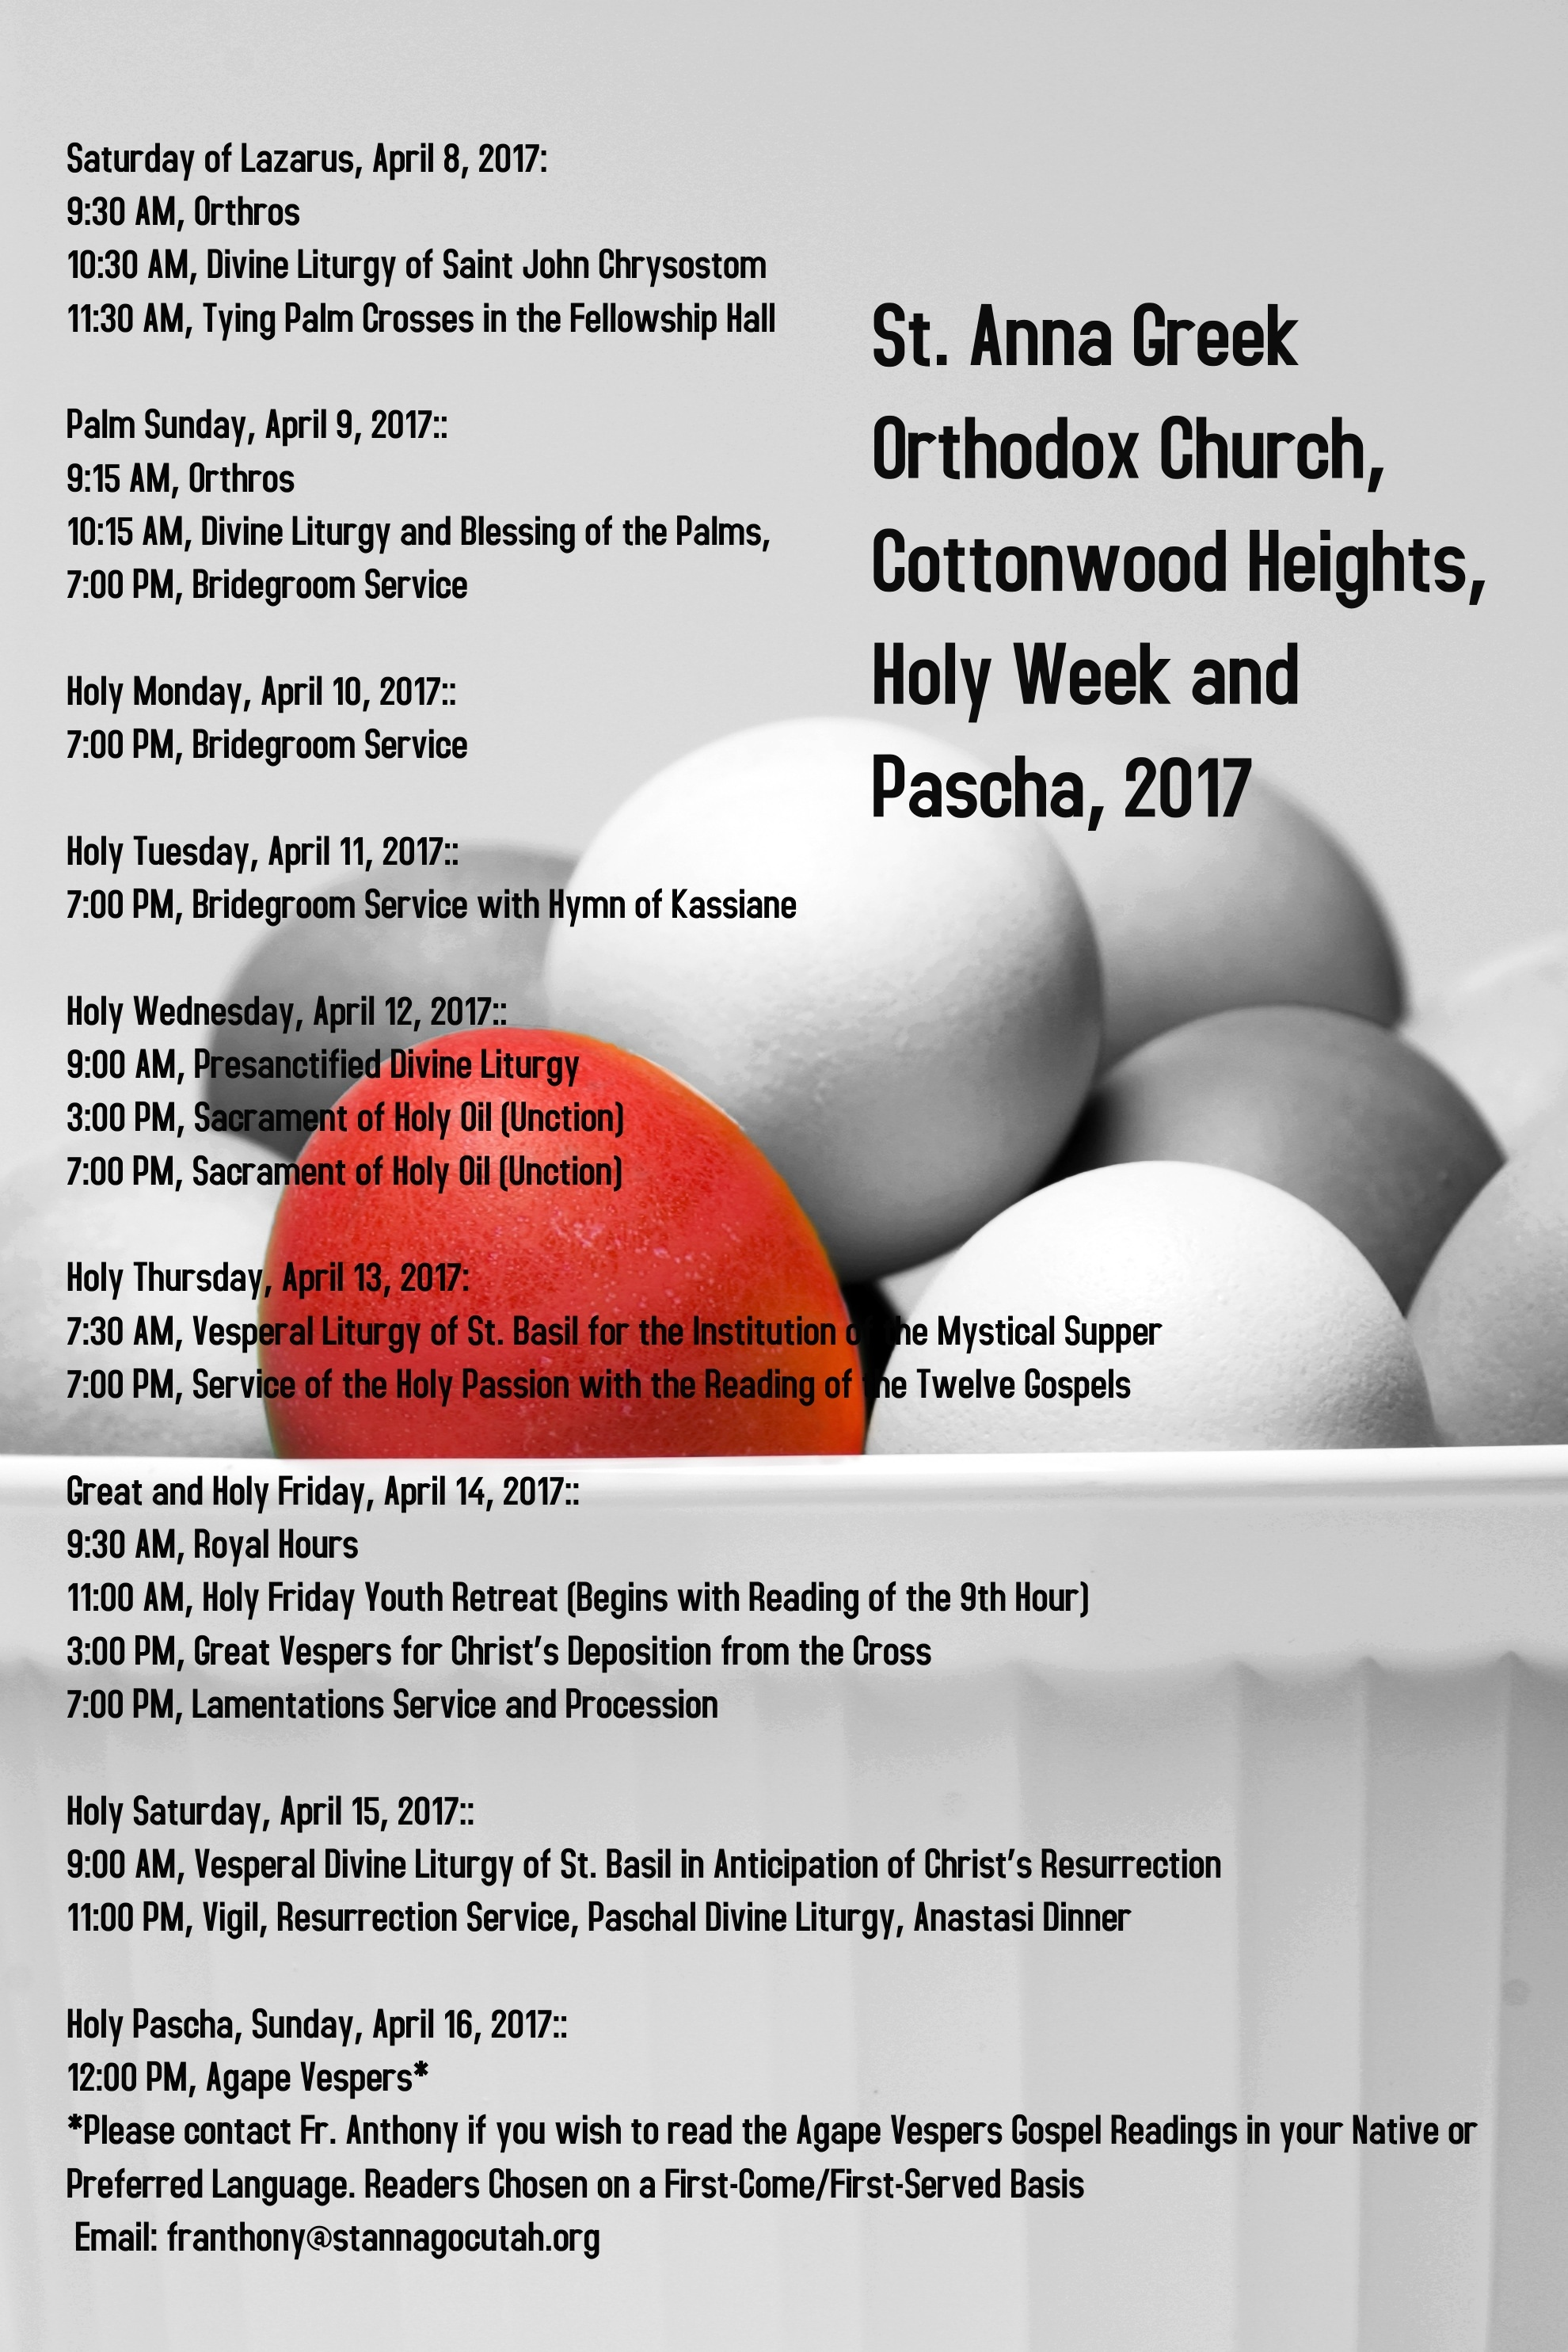 Holy Week and Pascha Schedule 2017